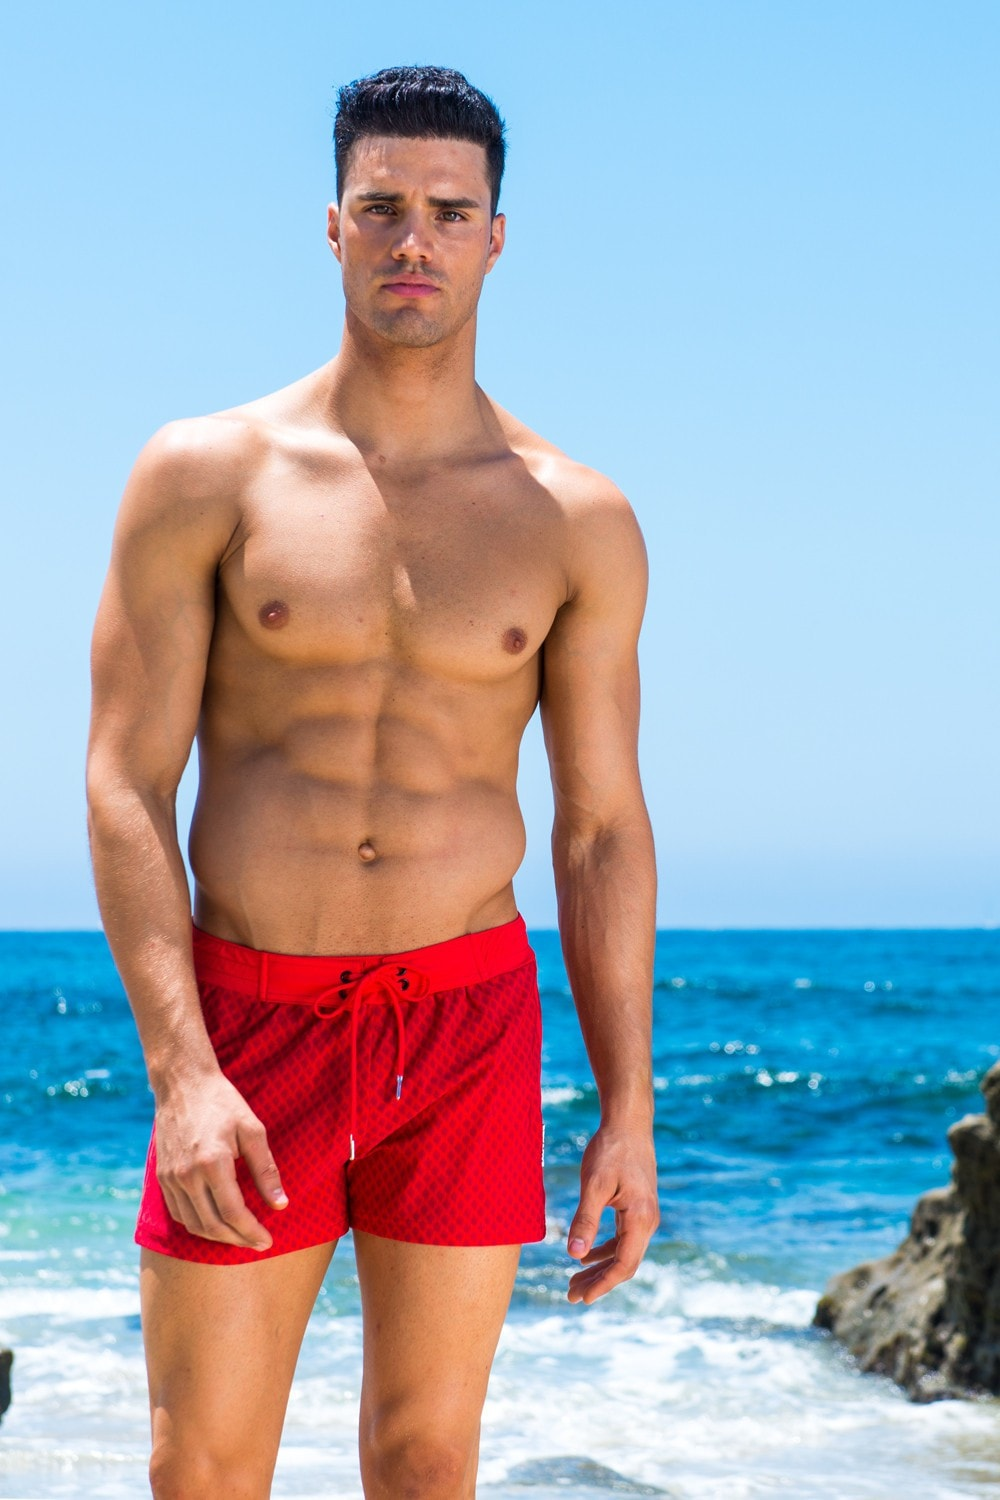 Shop the Latest Collection of Red Swim Trunk Swimwear for Men Online at free-desktop-stripper.ml FREE SHIPPING AVAILABLE!